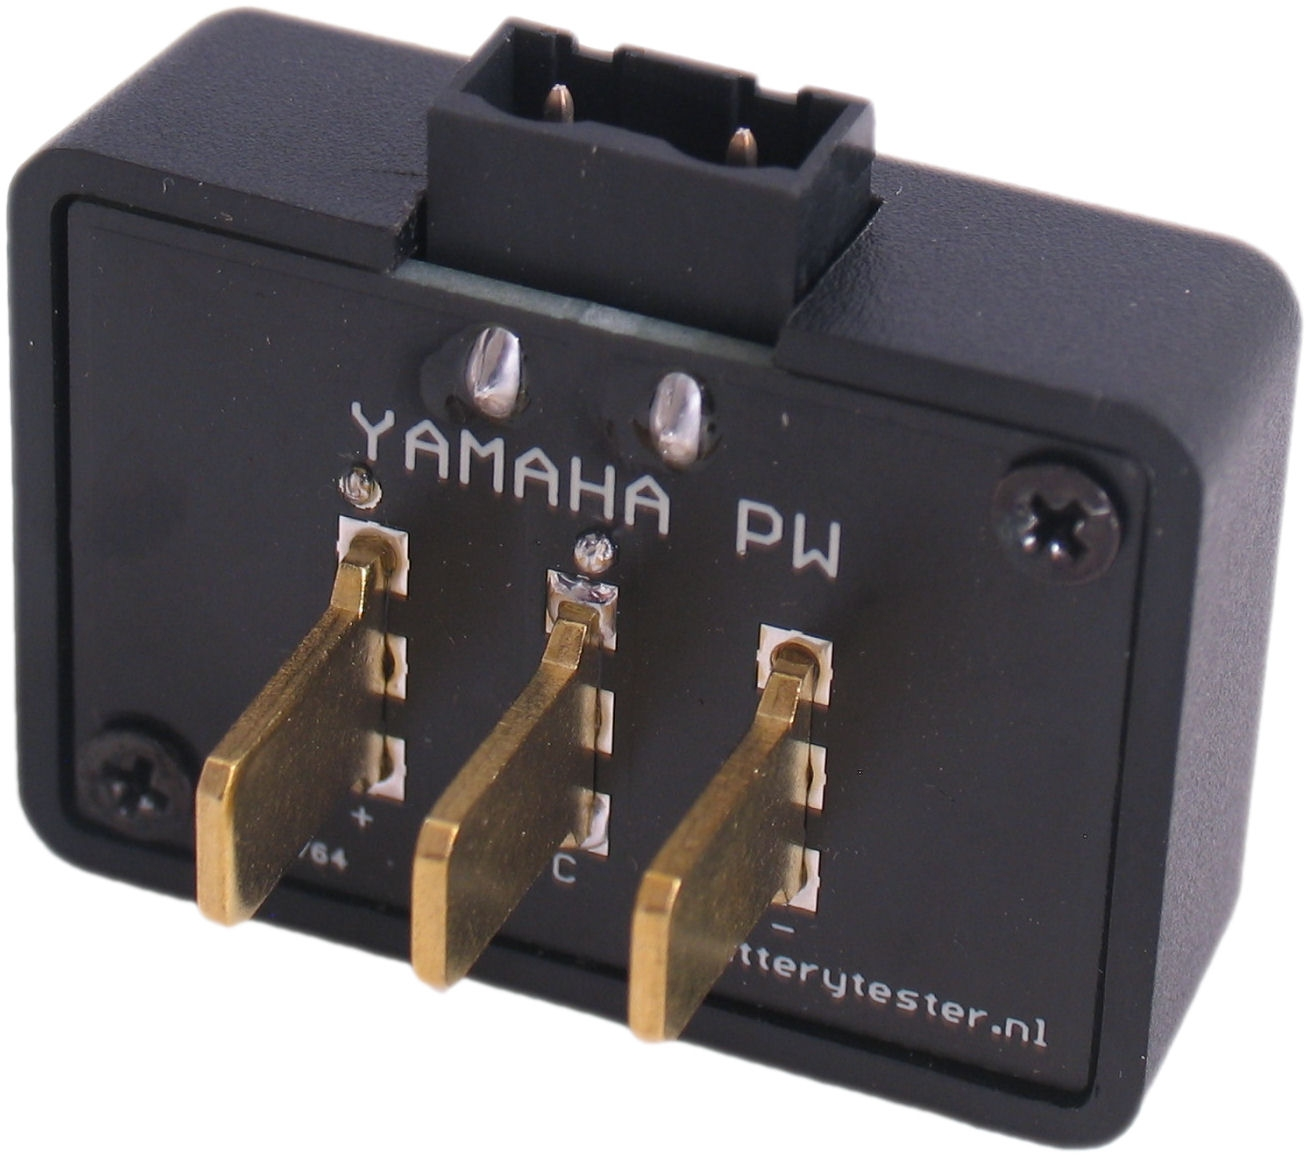 Adapter Batterytester voor Yamaha PW system (36V)